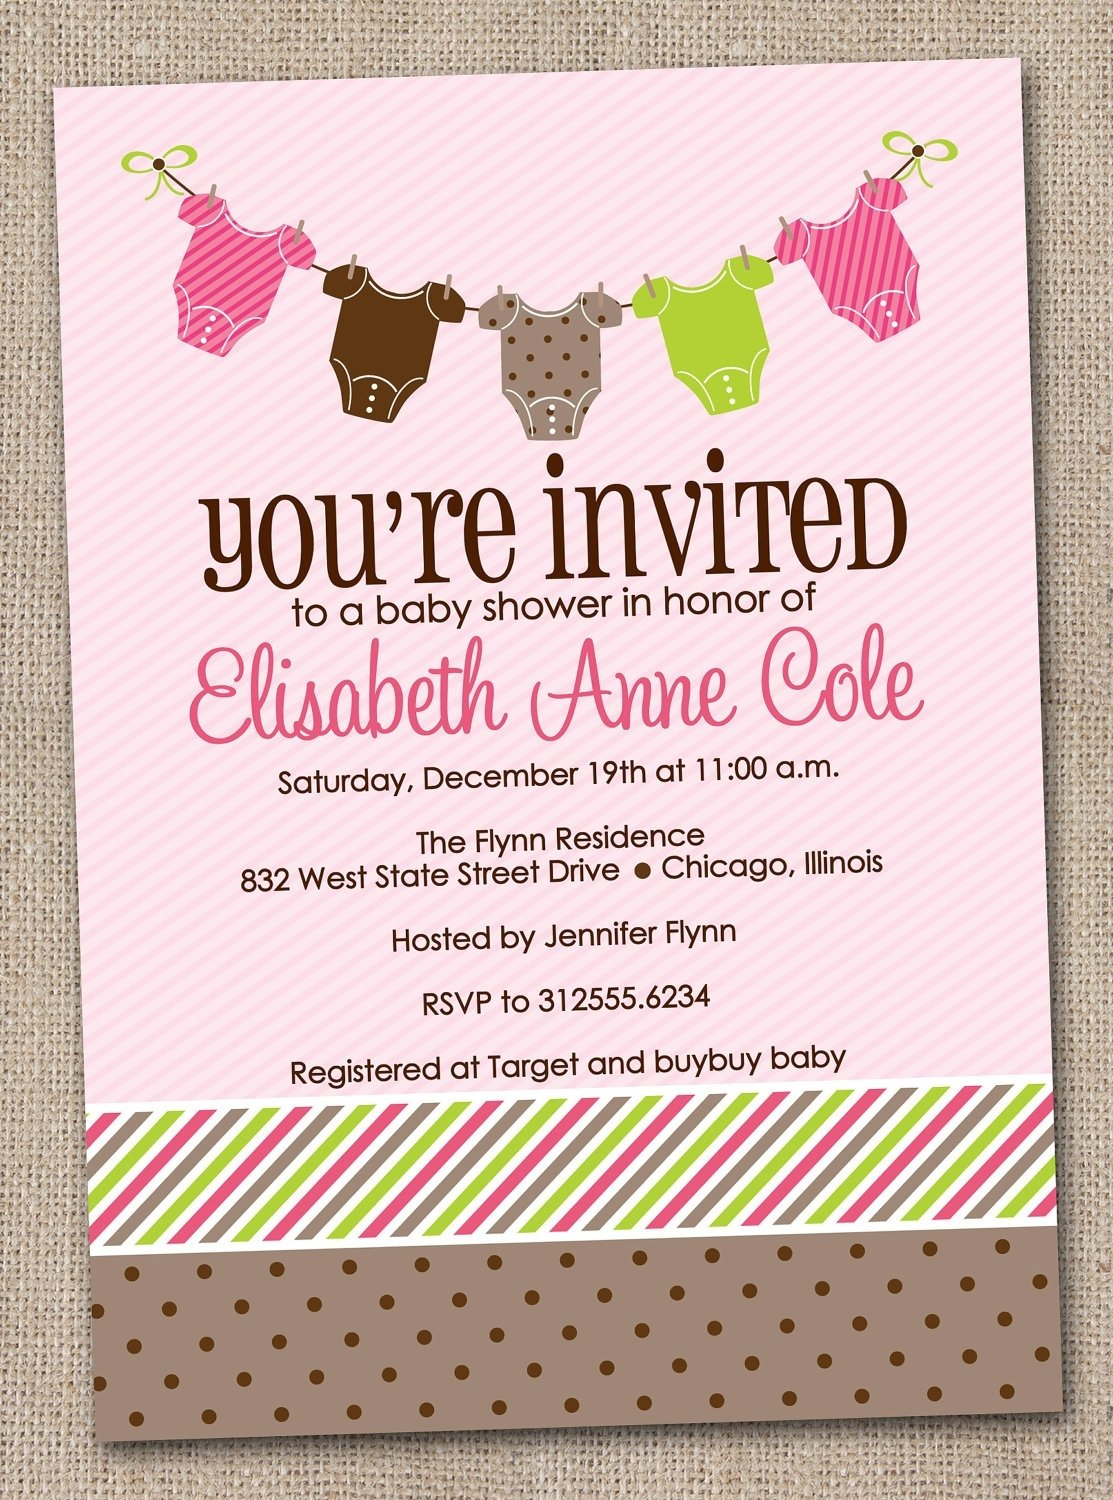 baby shower invitation wording ideas for girl | baby shower ideas